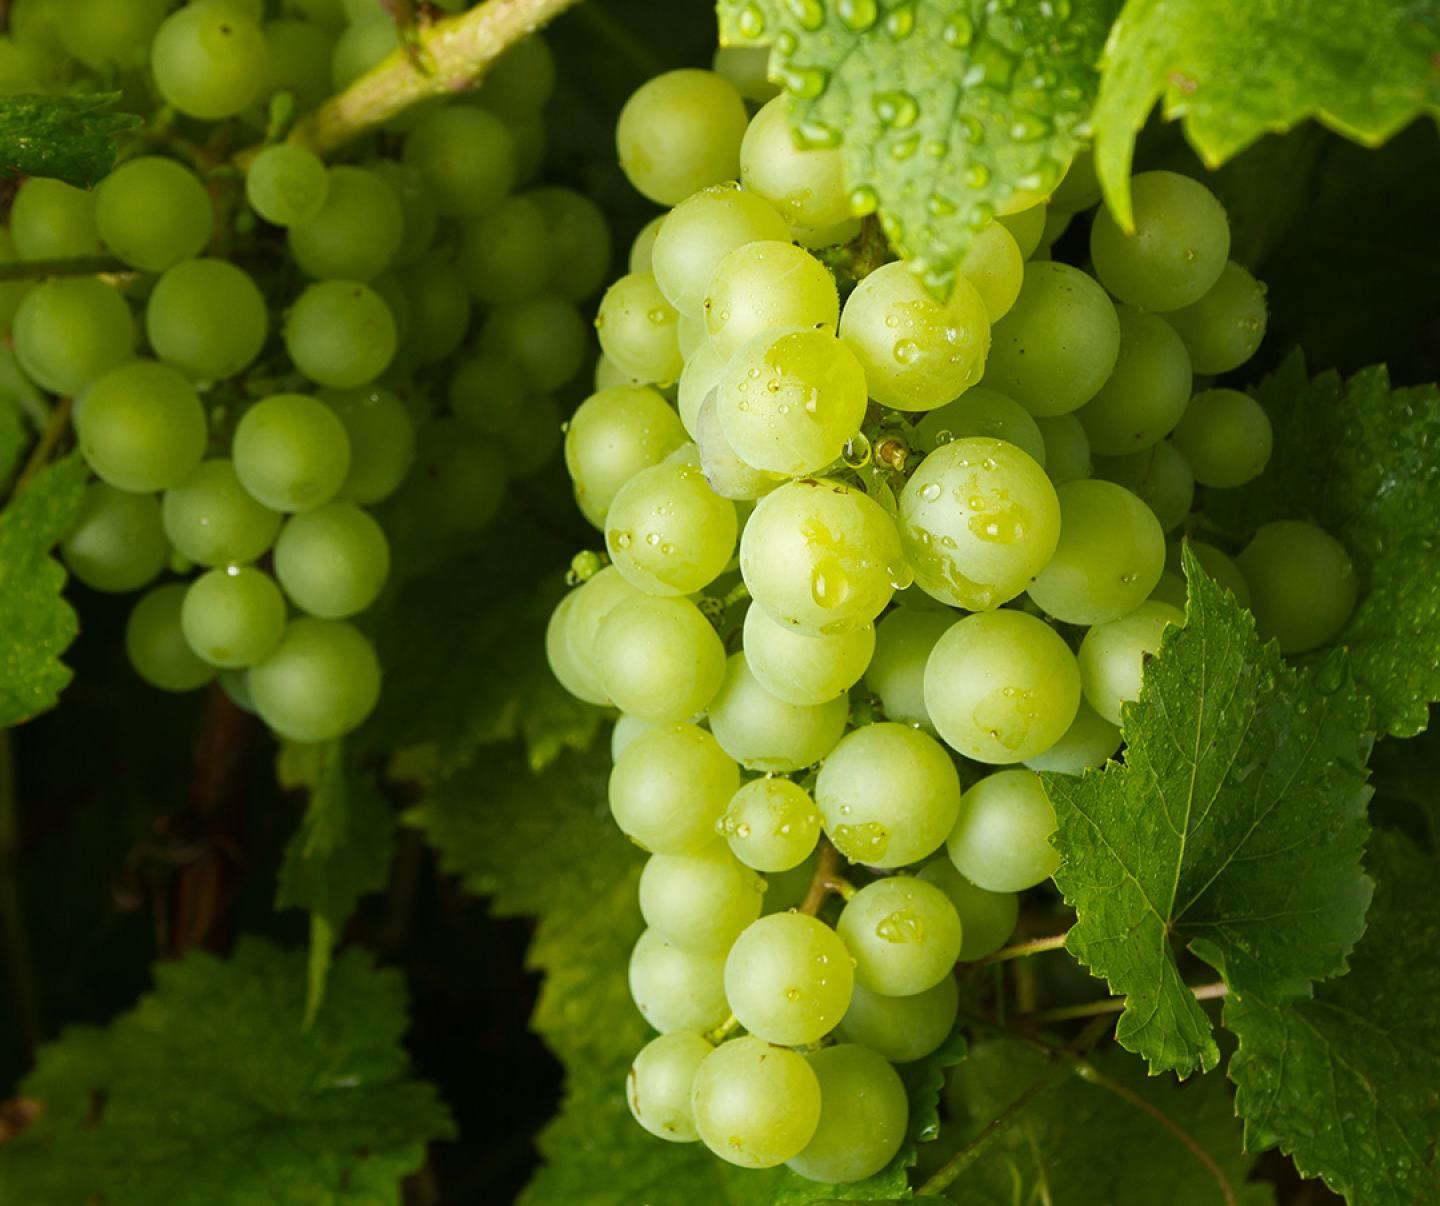 Close up of green grape crop